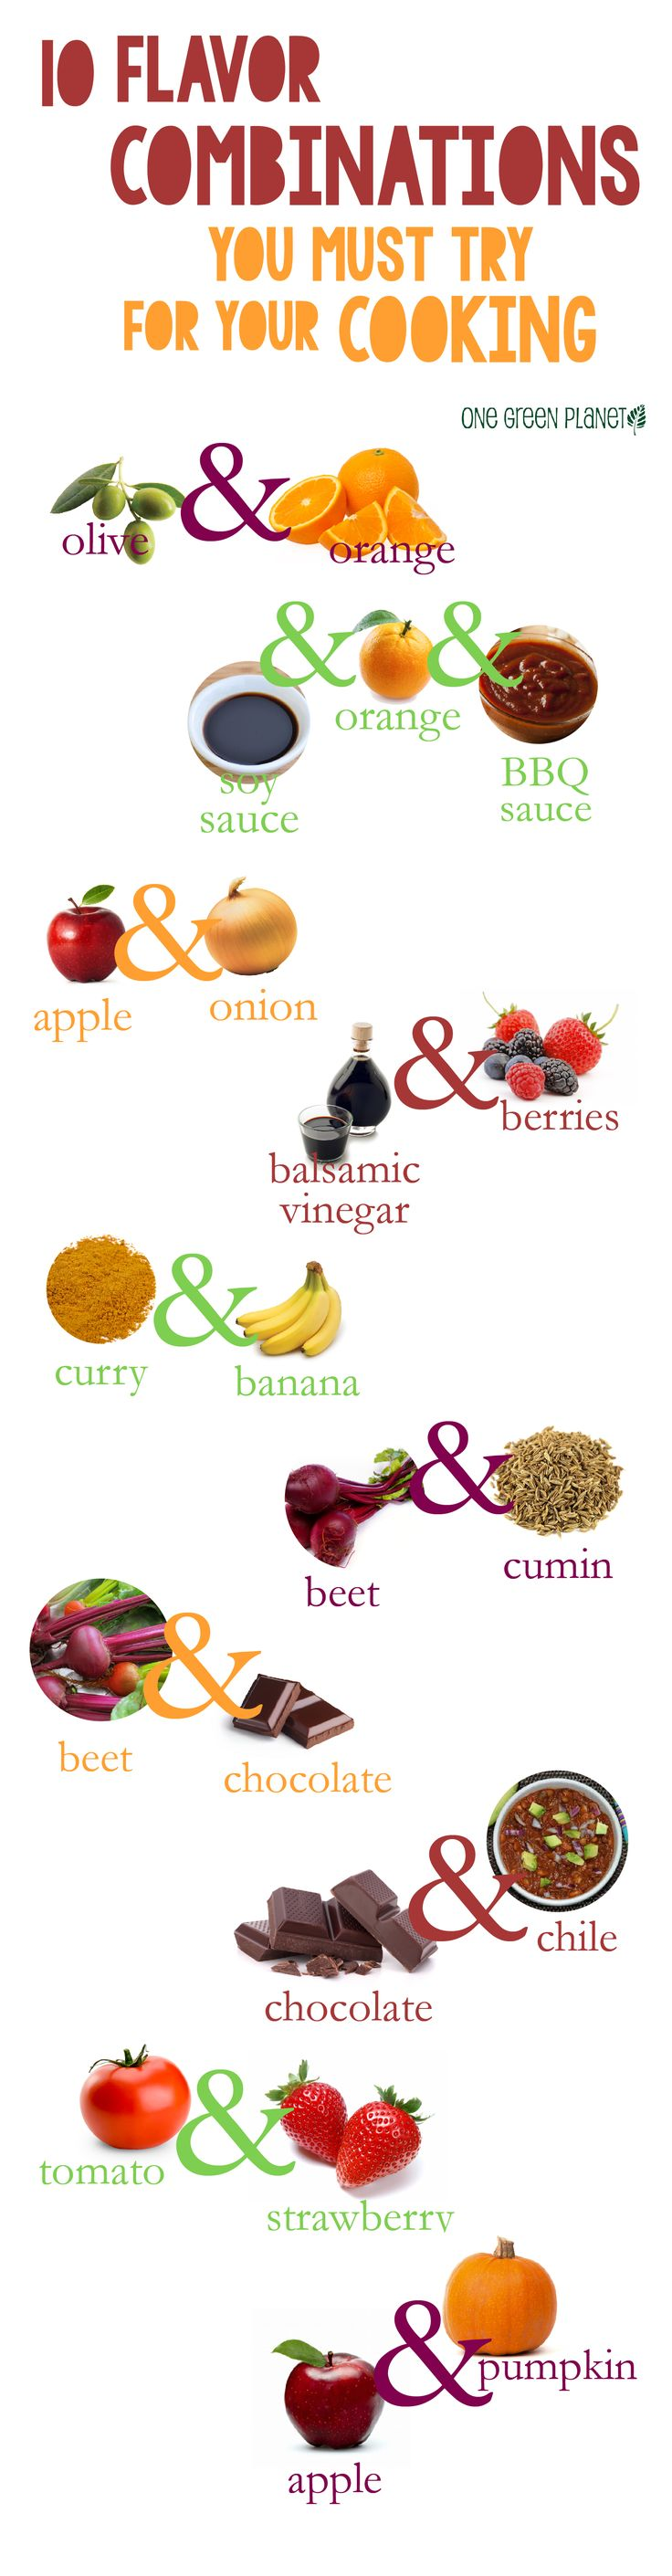 New flavor combinations to try: To keep the health quotient up, make your own BBQ sauce or choose one with few ingredients and no added sugars. And use dark chocolate for a #superfood boost! #vegan